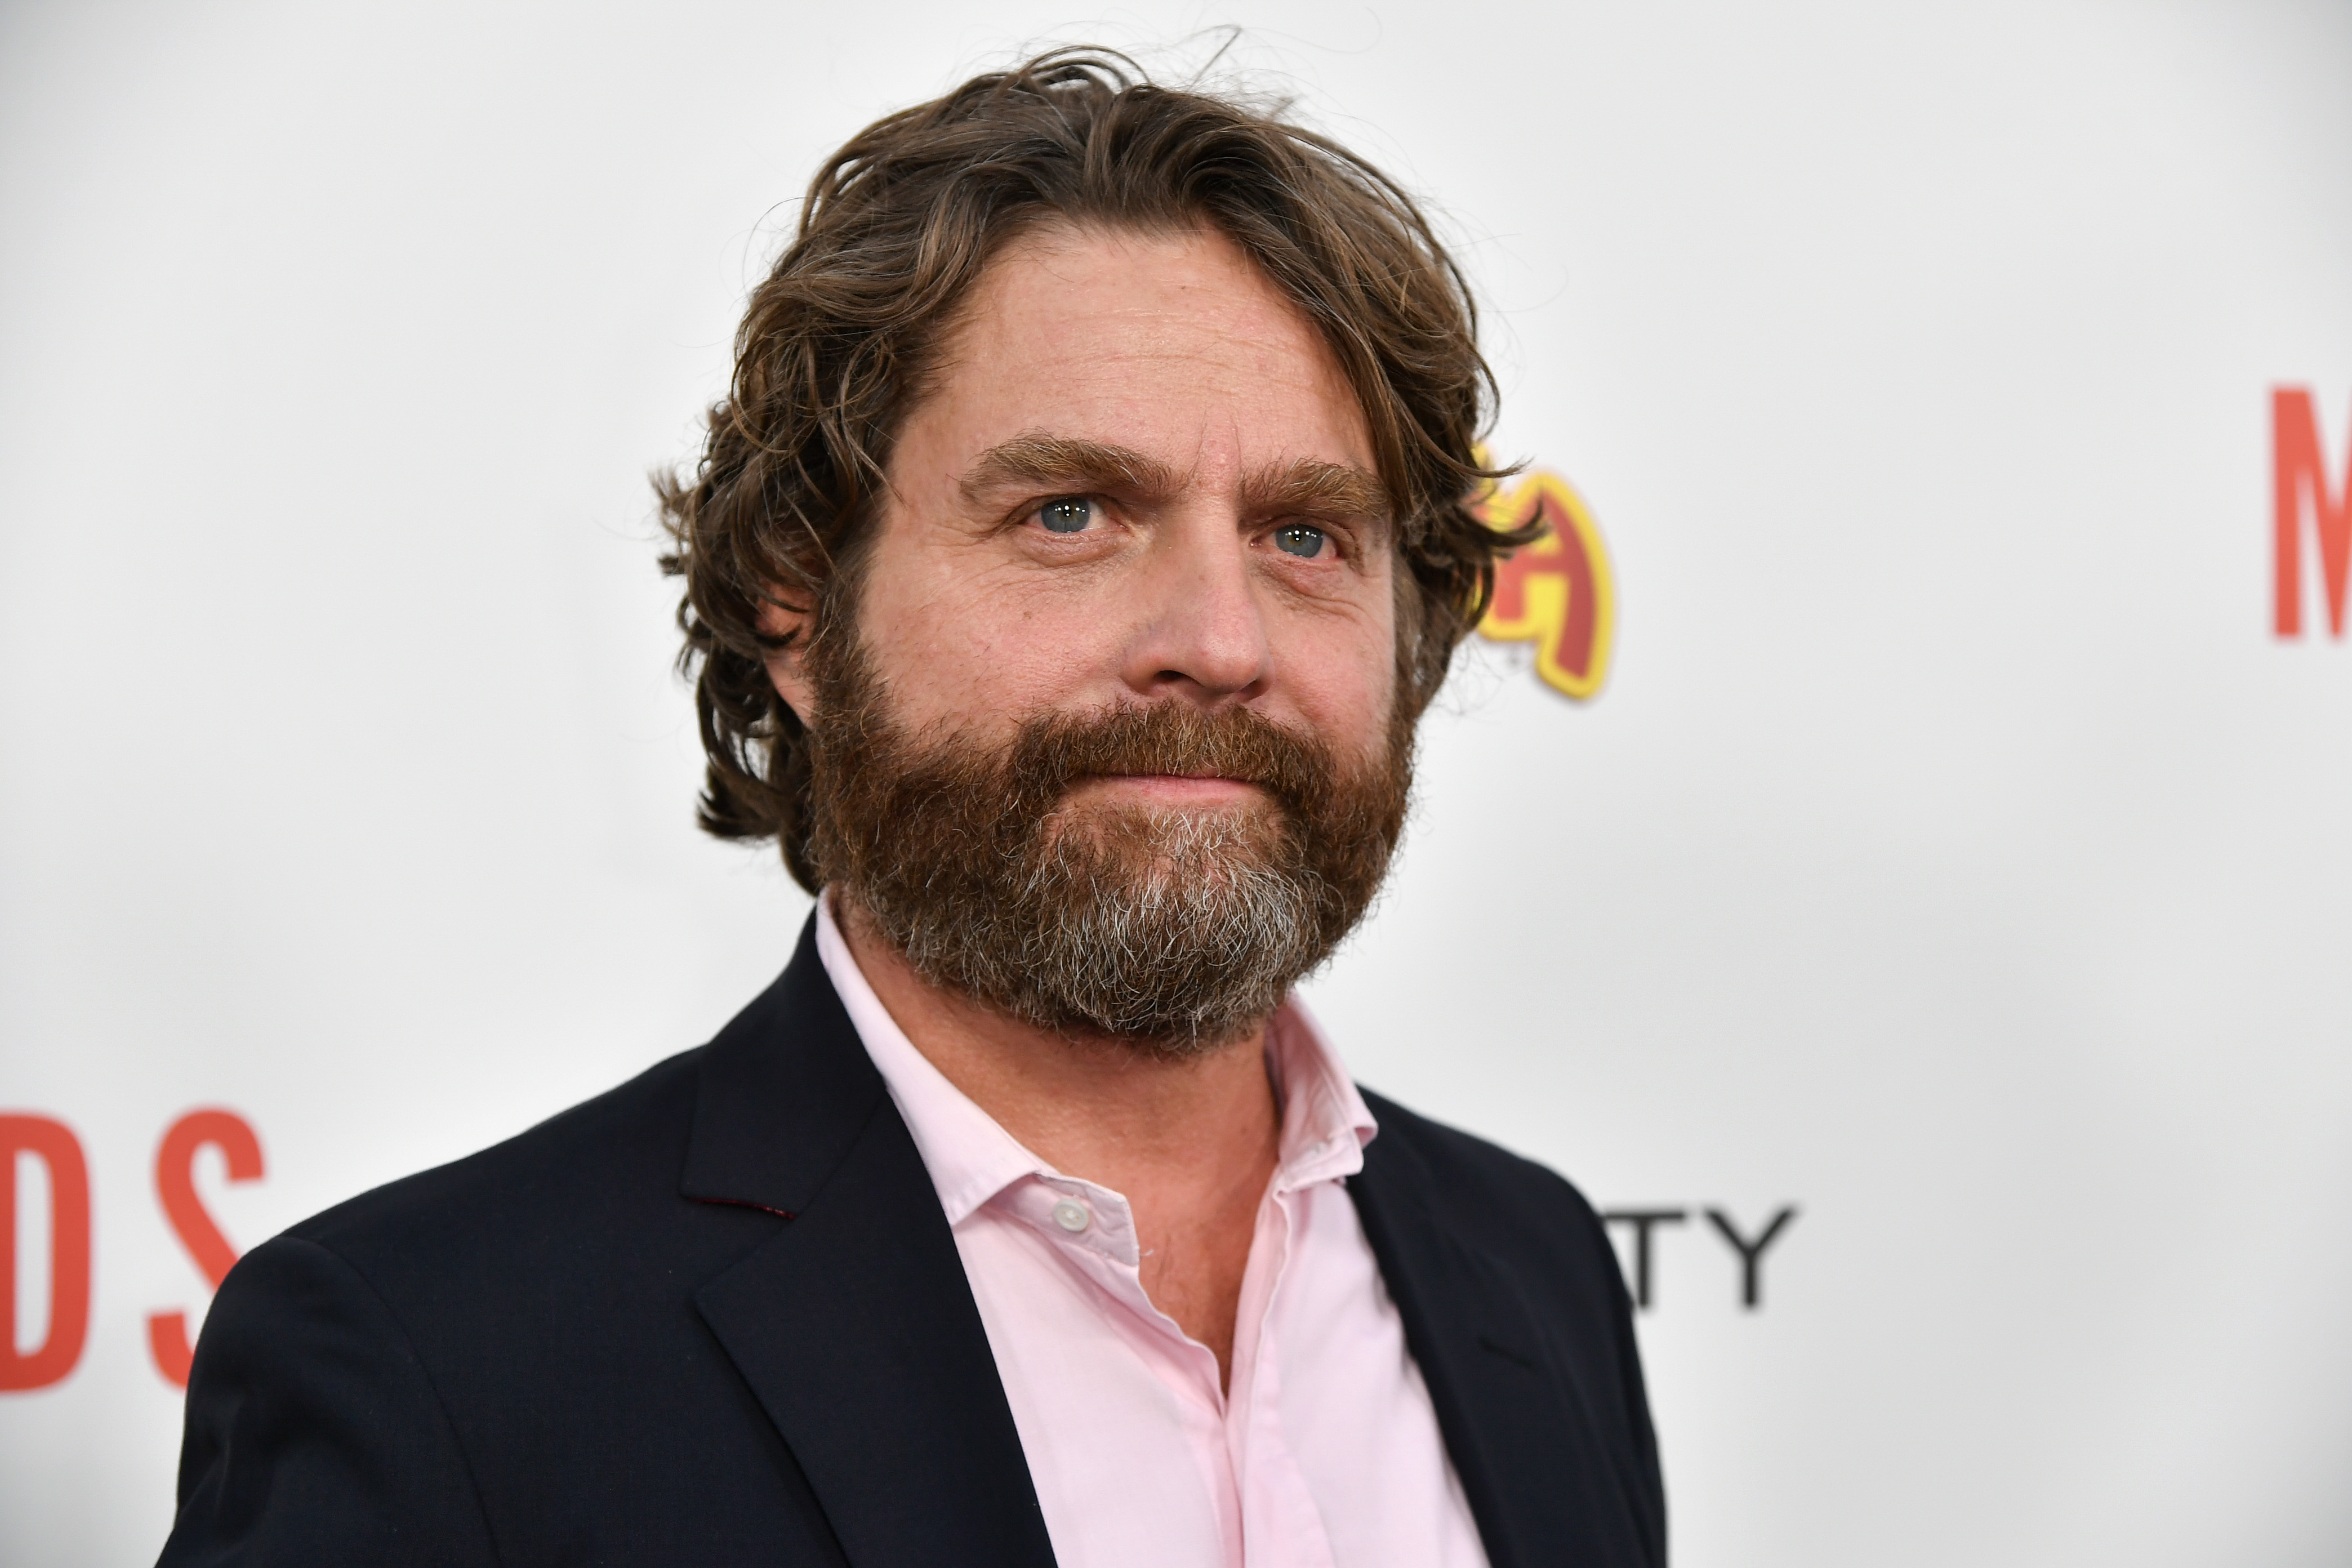 Zach Galifianakis Created a Gerrymandering Documentary Named 'Democracy for Sale' – Watch Clip